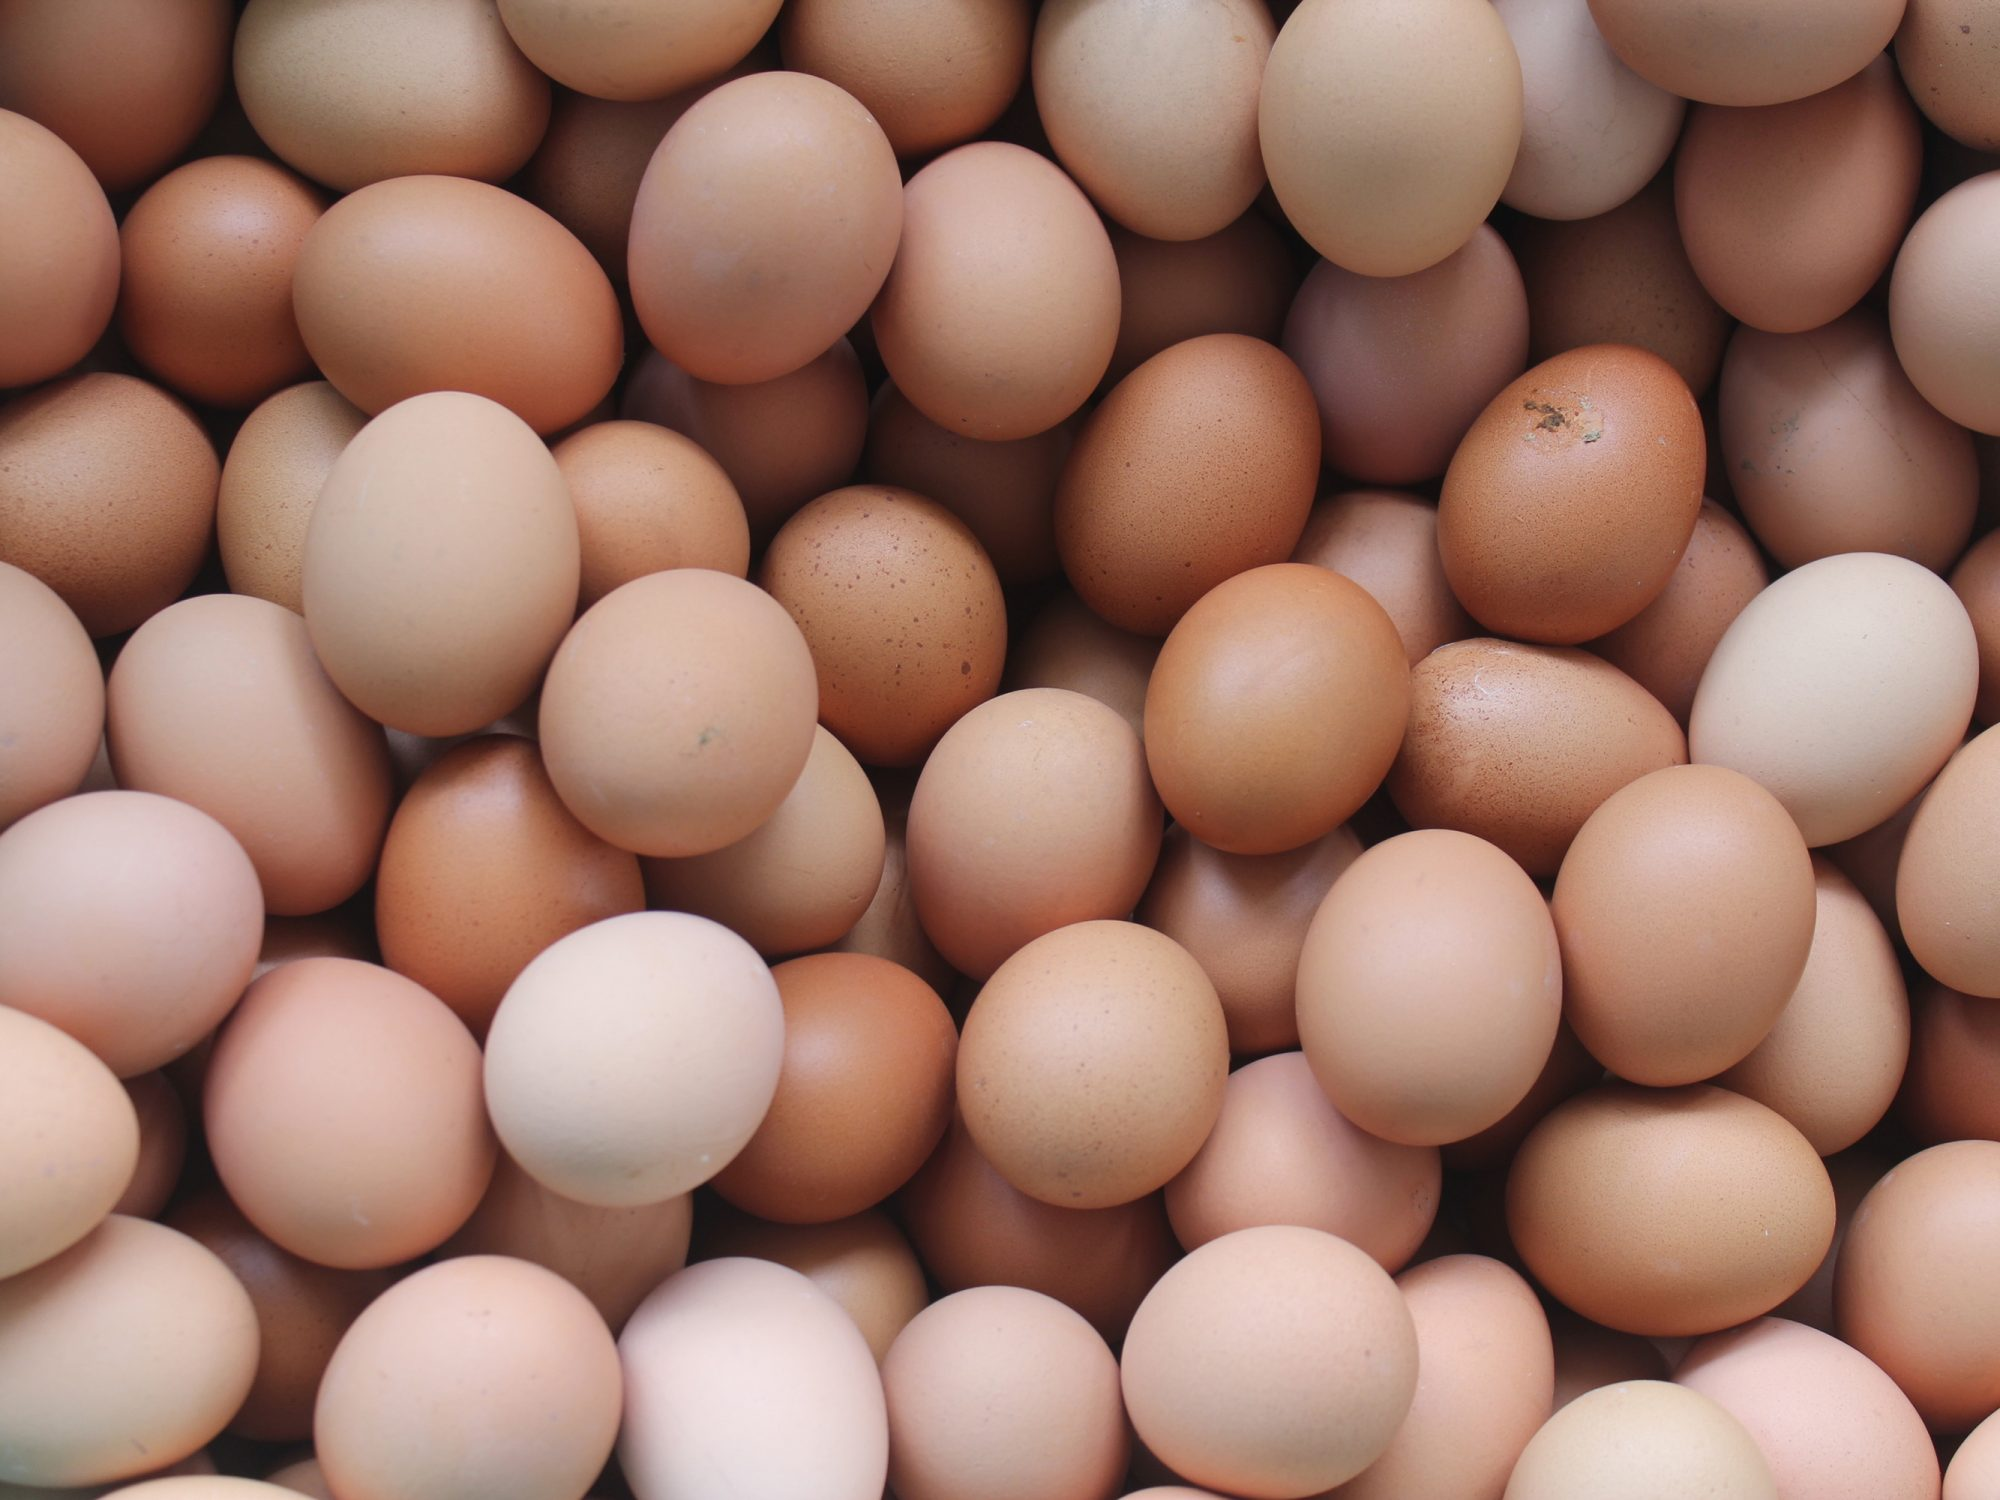 FDA Announces Another Salmonella Outbreak Linked to Eggs